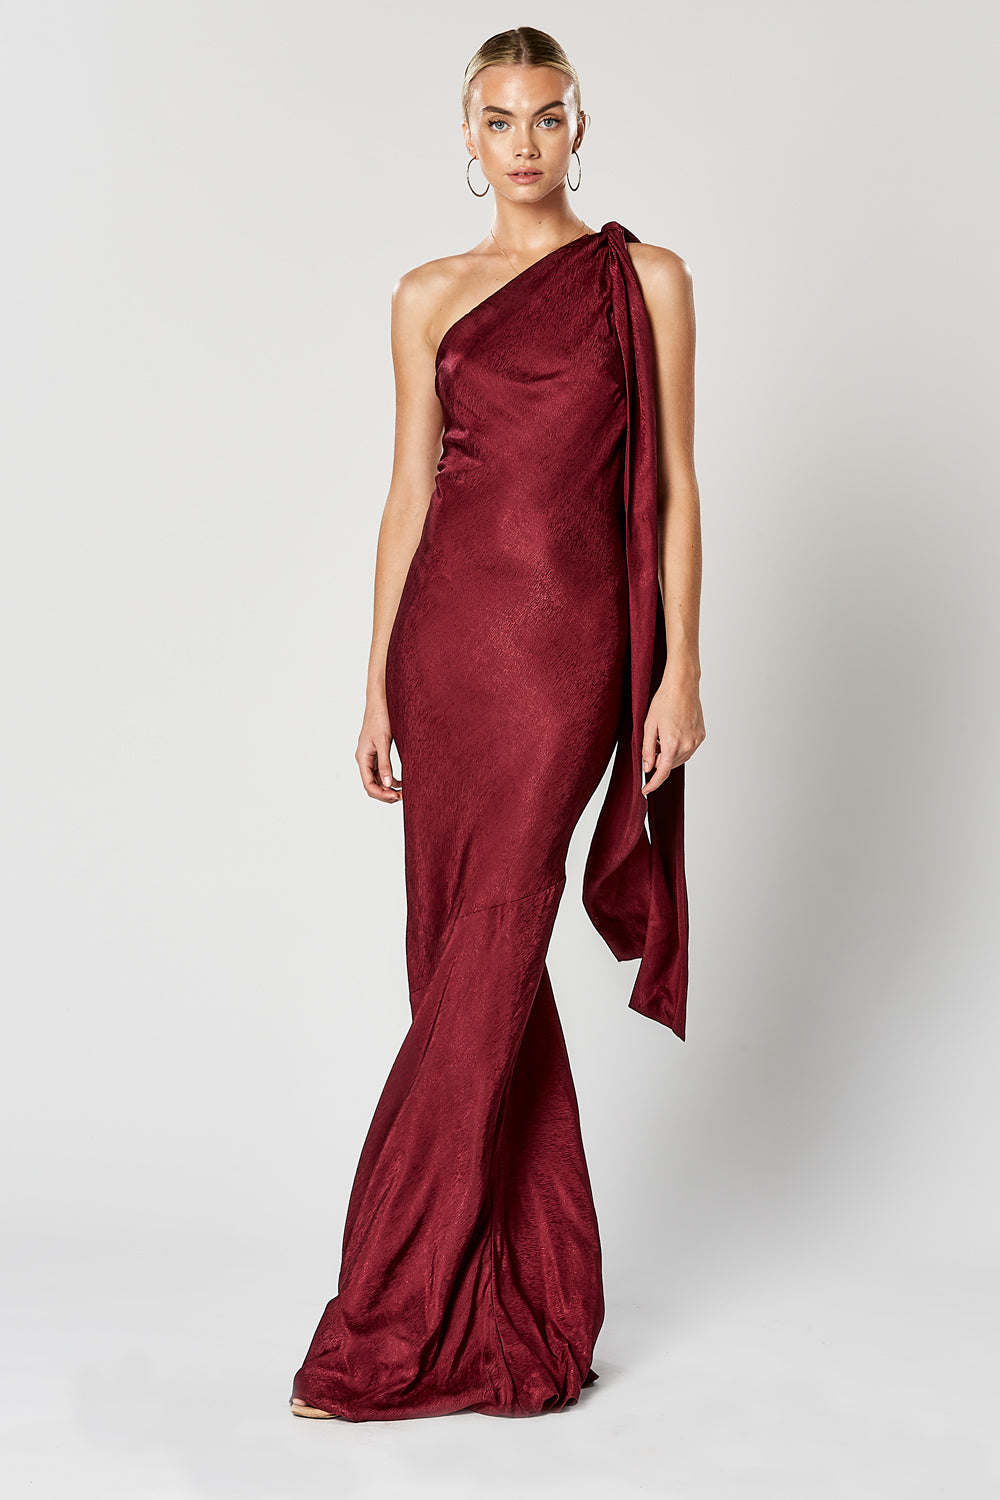 Winona Virtue Maxi Dress